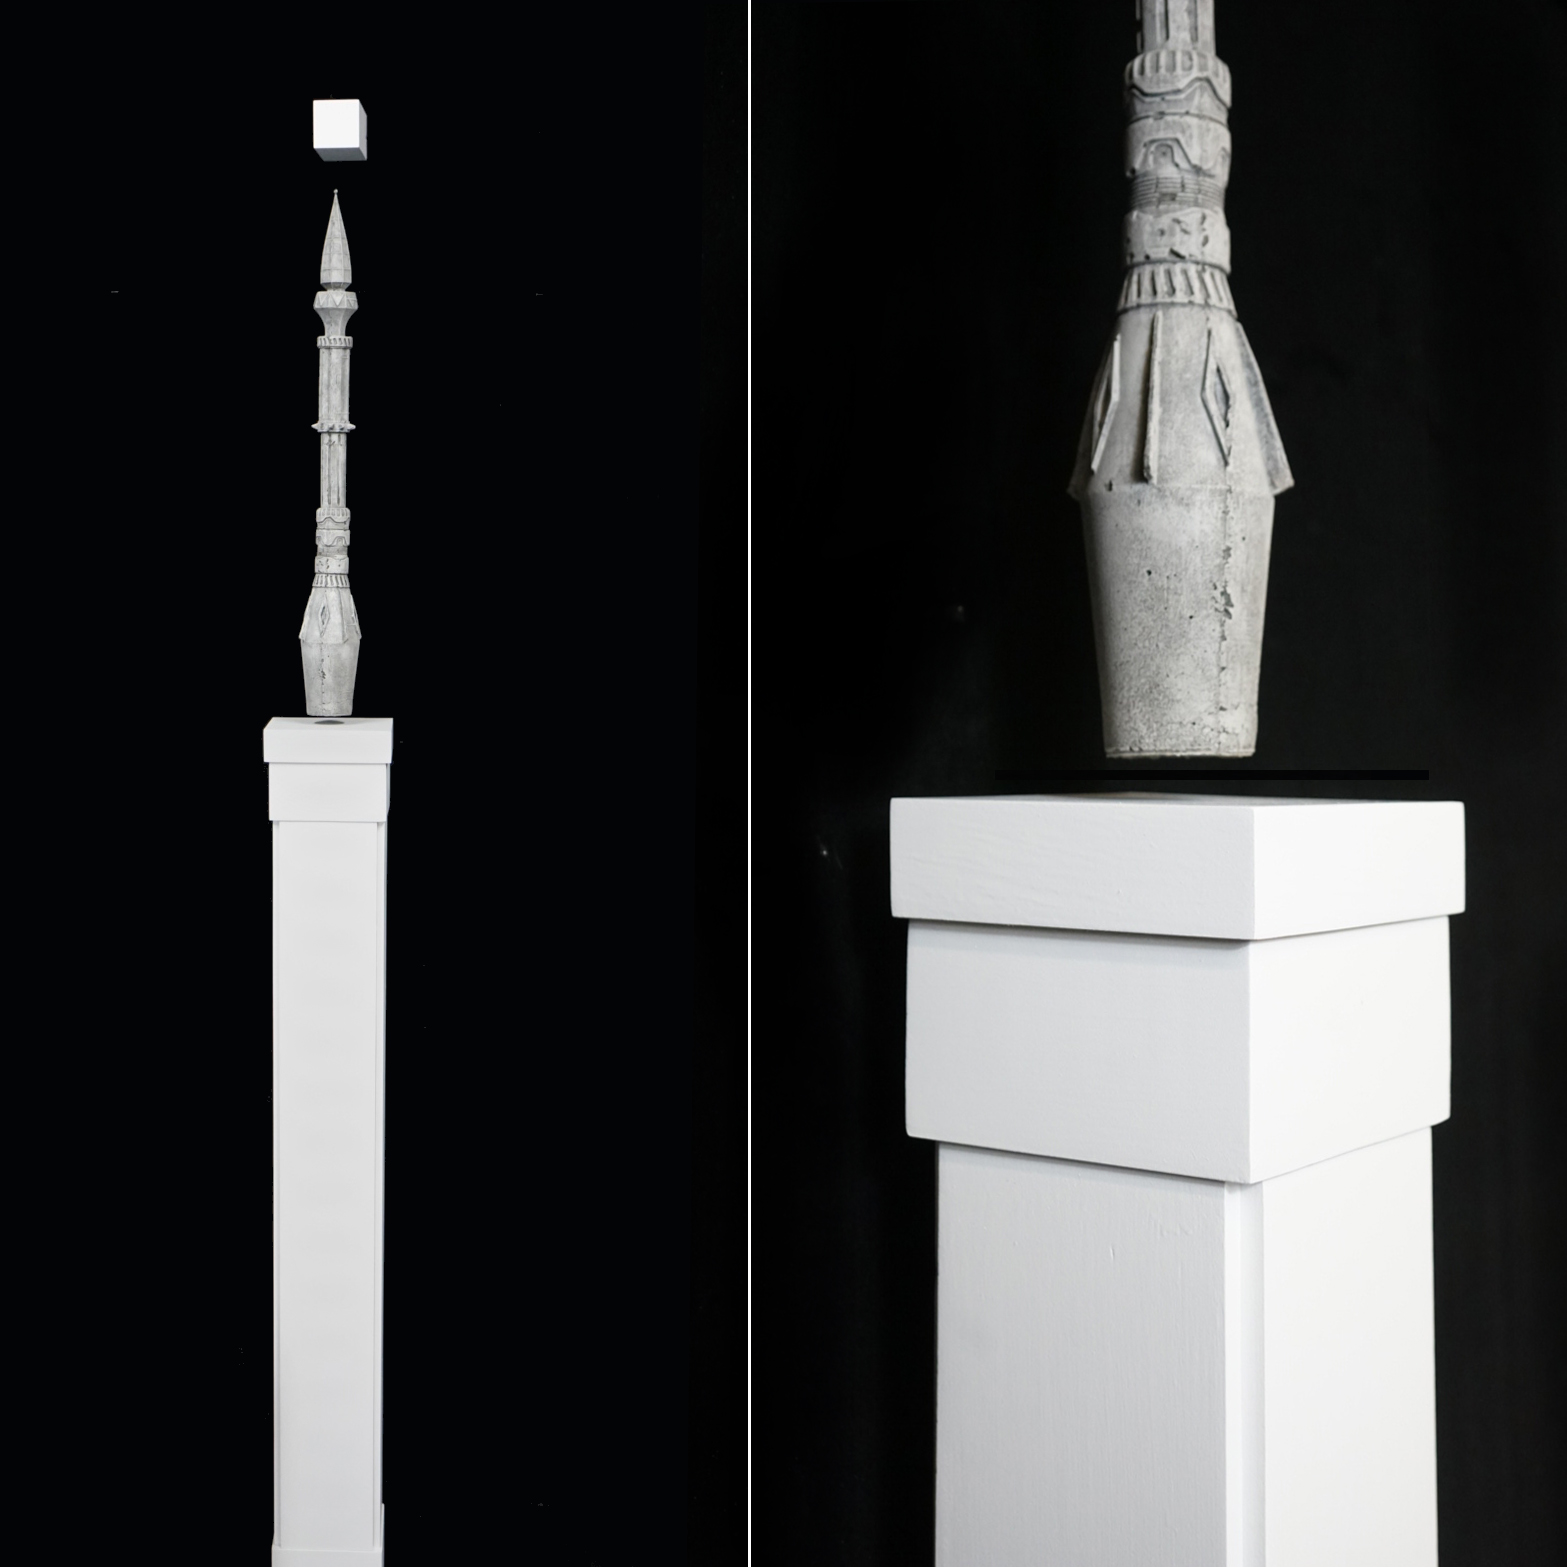 Levitating Minaret, 2019, High density foam, electromagnets, wood, and paint, 24 x 4 in